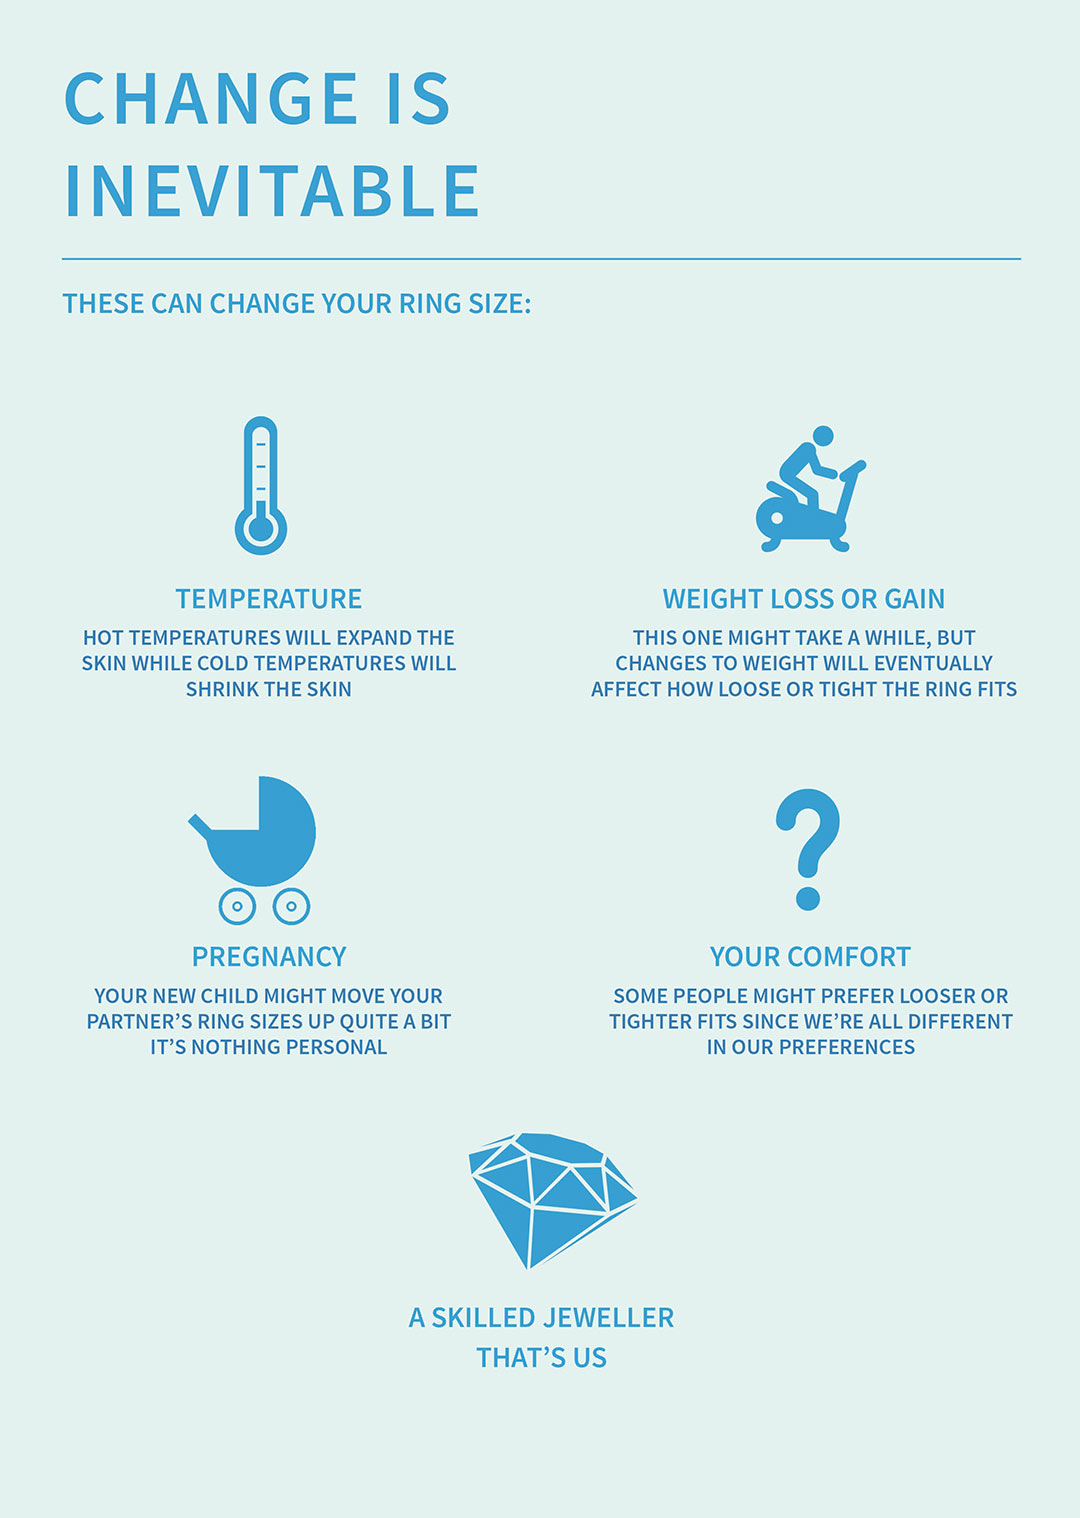 How The Environment Changes Your Ring Size